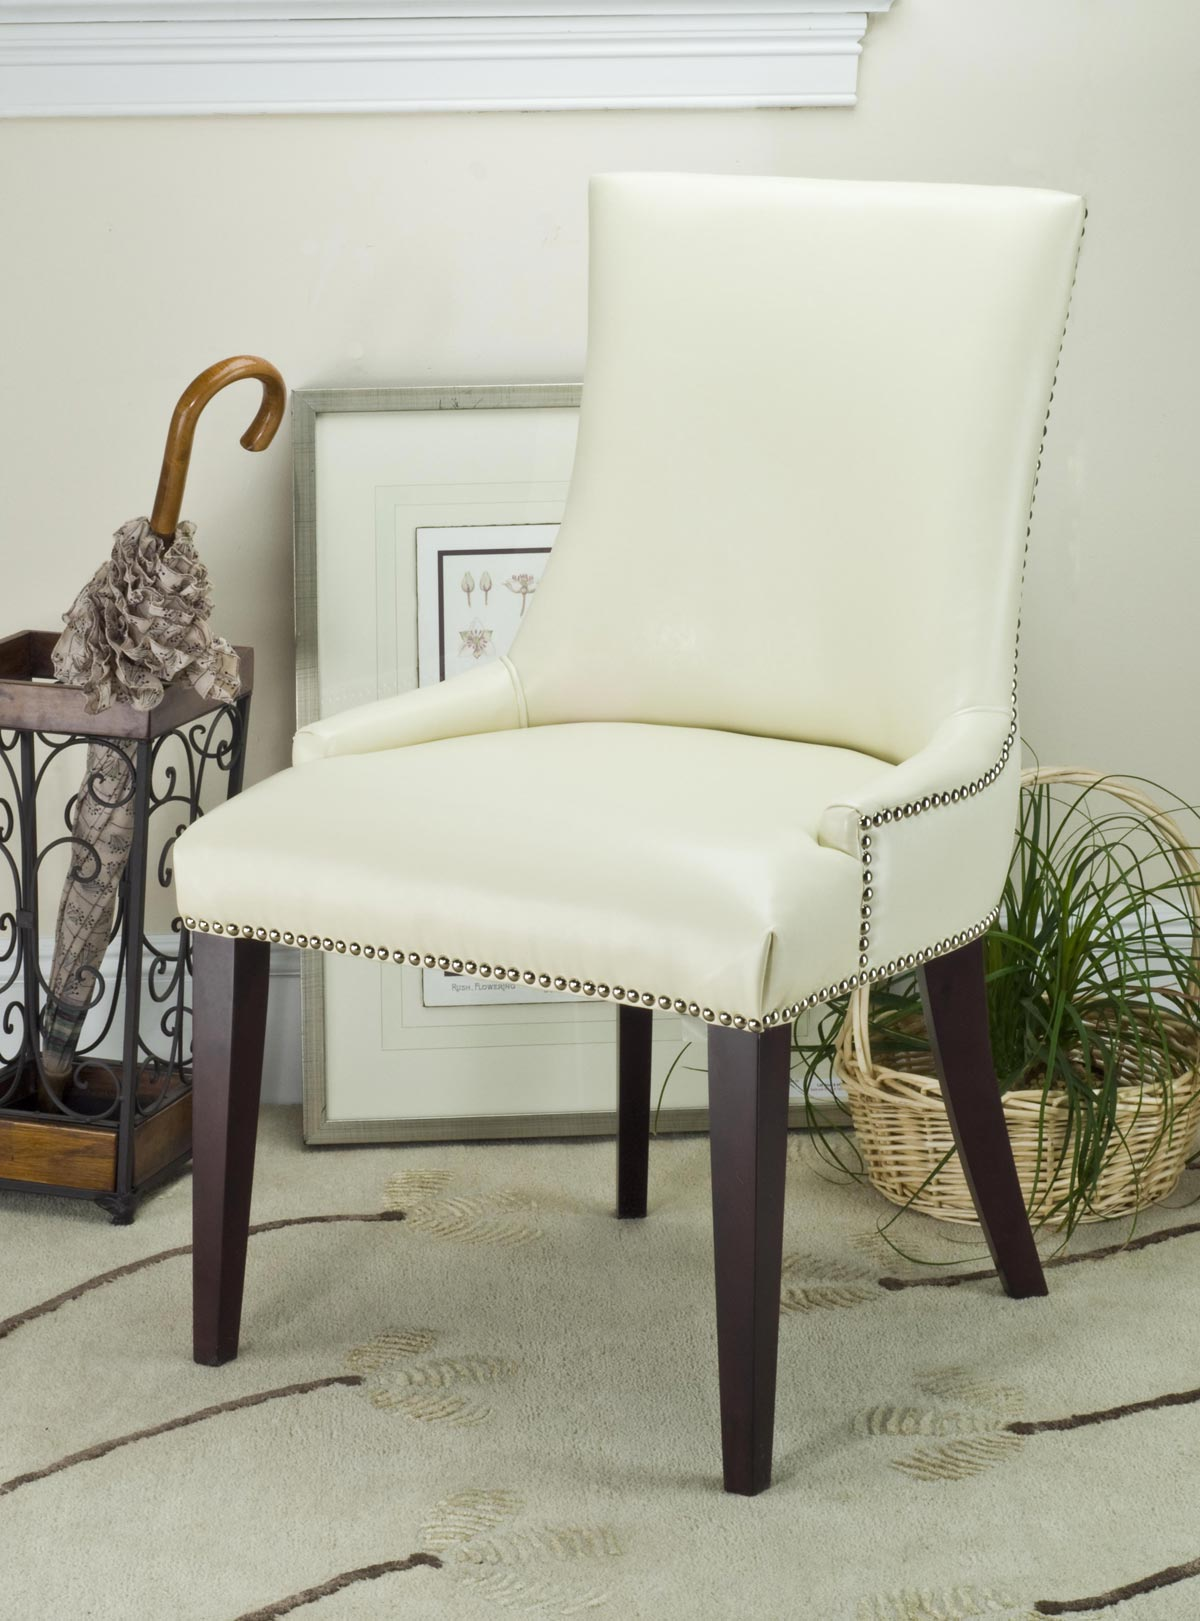 Safavieh - MCR4502B BECCA DINING CHAIR